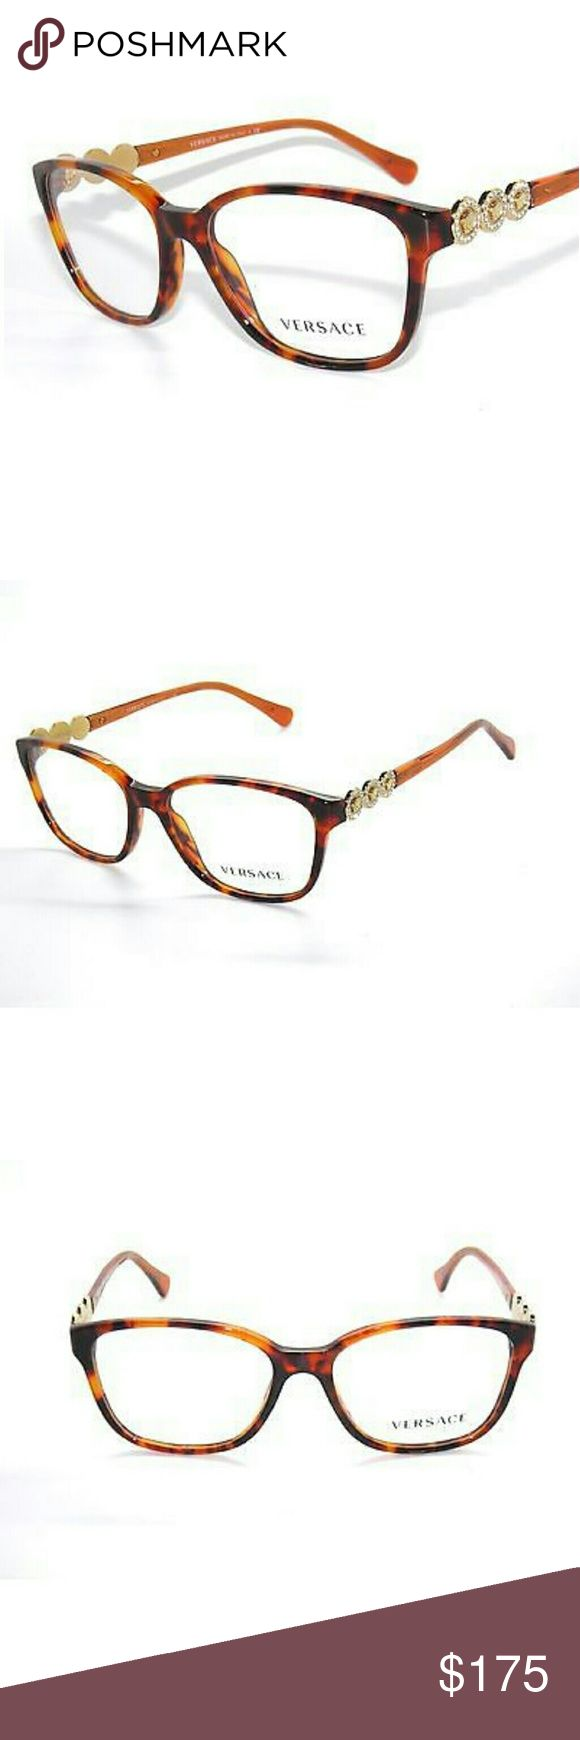 Versace Eyeglasses New and authentic  Versace Eyeglasses  Brown and gold frame  53mm Original case included Versace Accessories Glasses